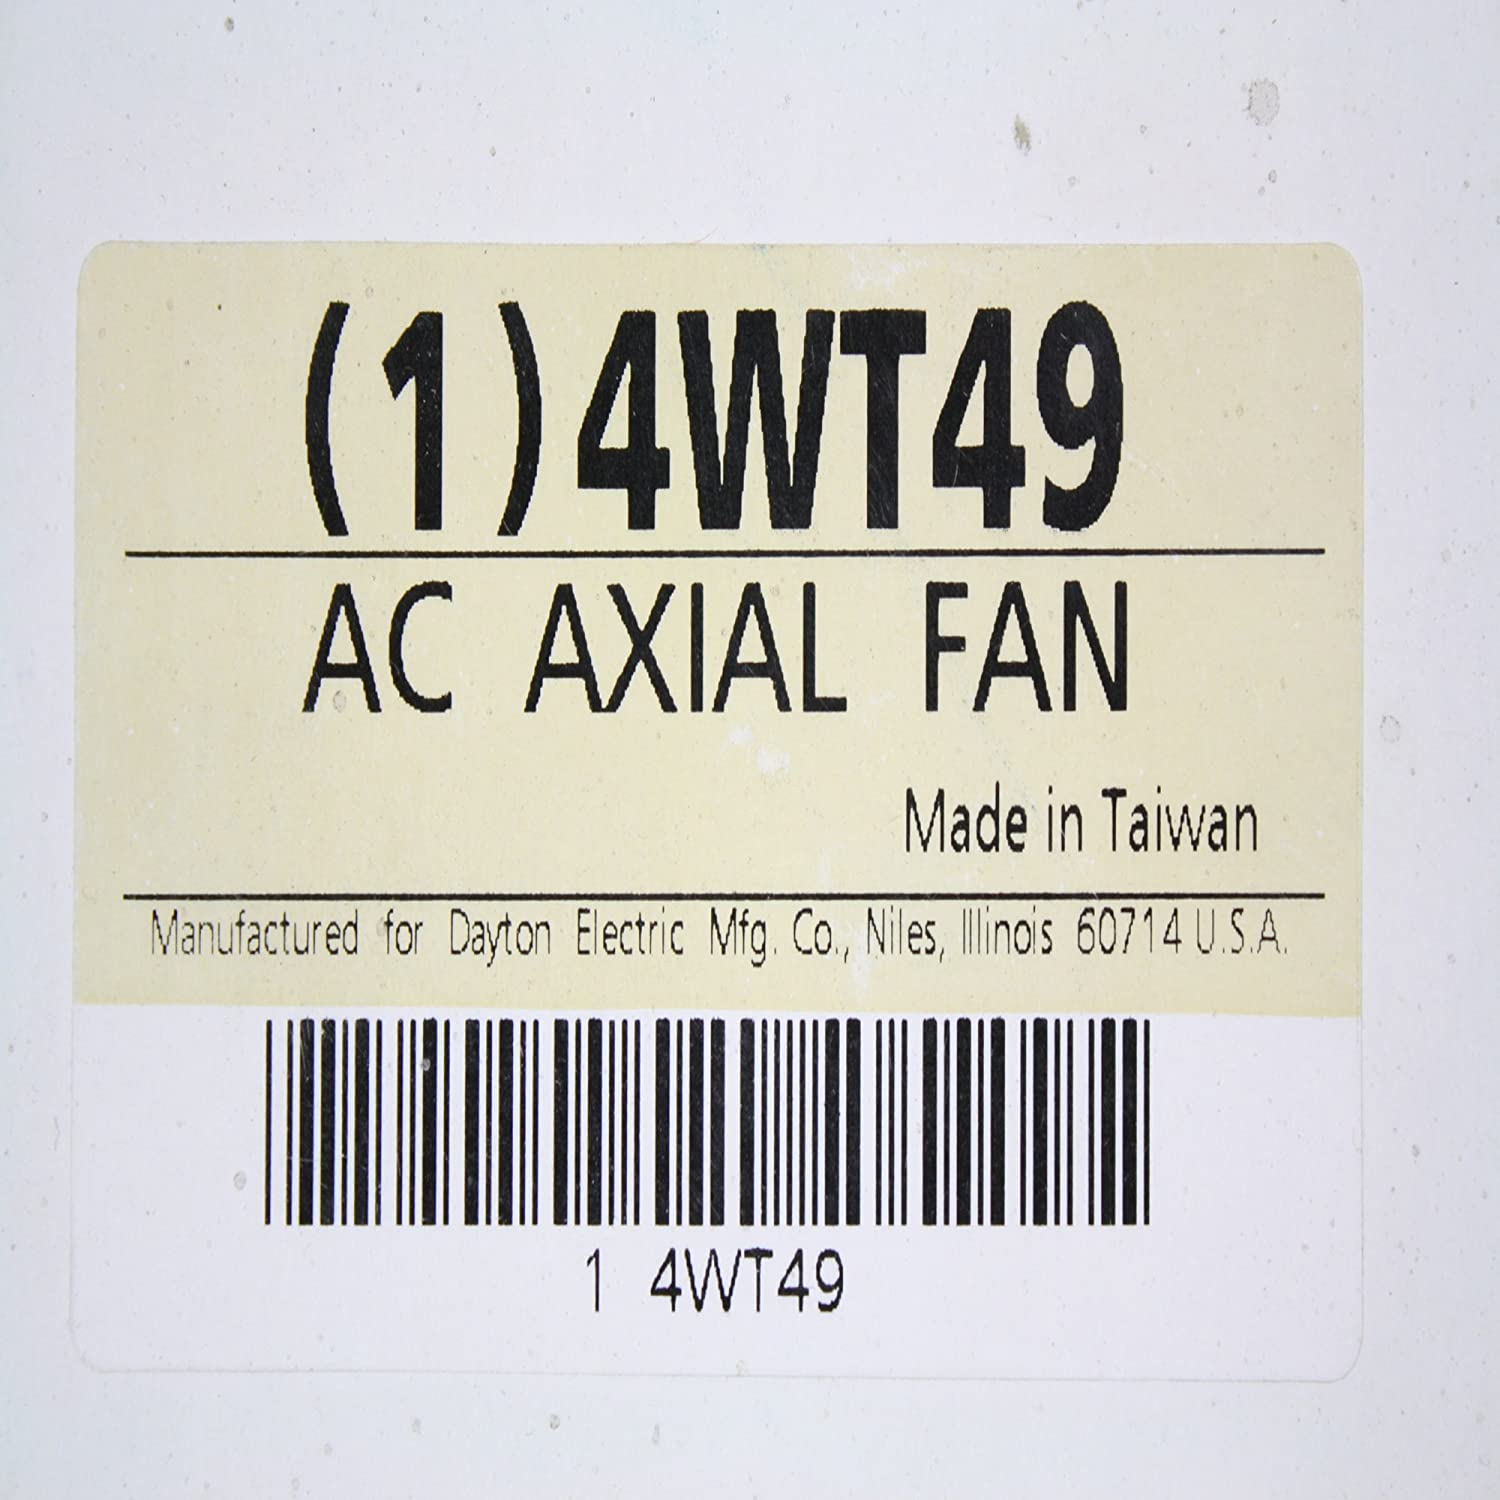 Dayton 4wt49 Fan Axial 55 Cfm 115 V Hvac Controls 115v Ac Electric Motor Wiring Graphic Industrial Scientific